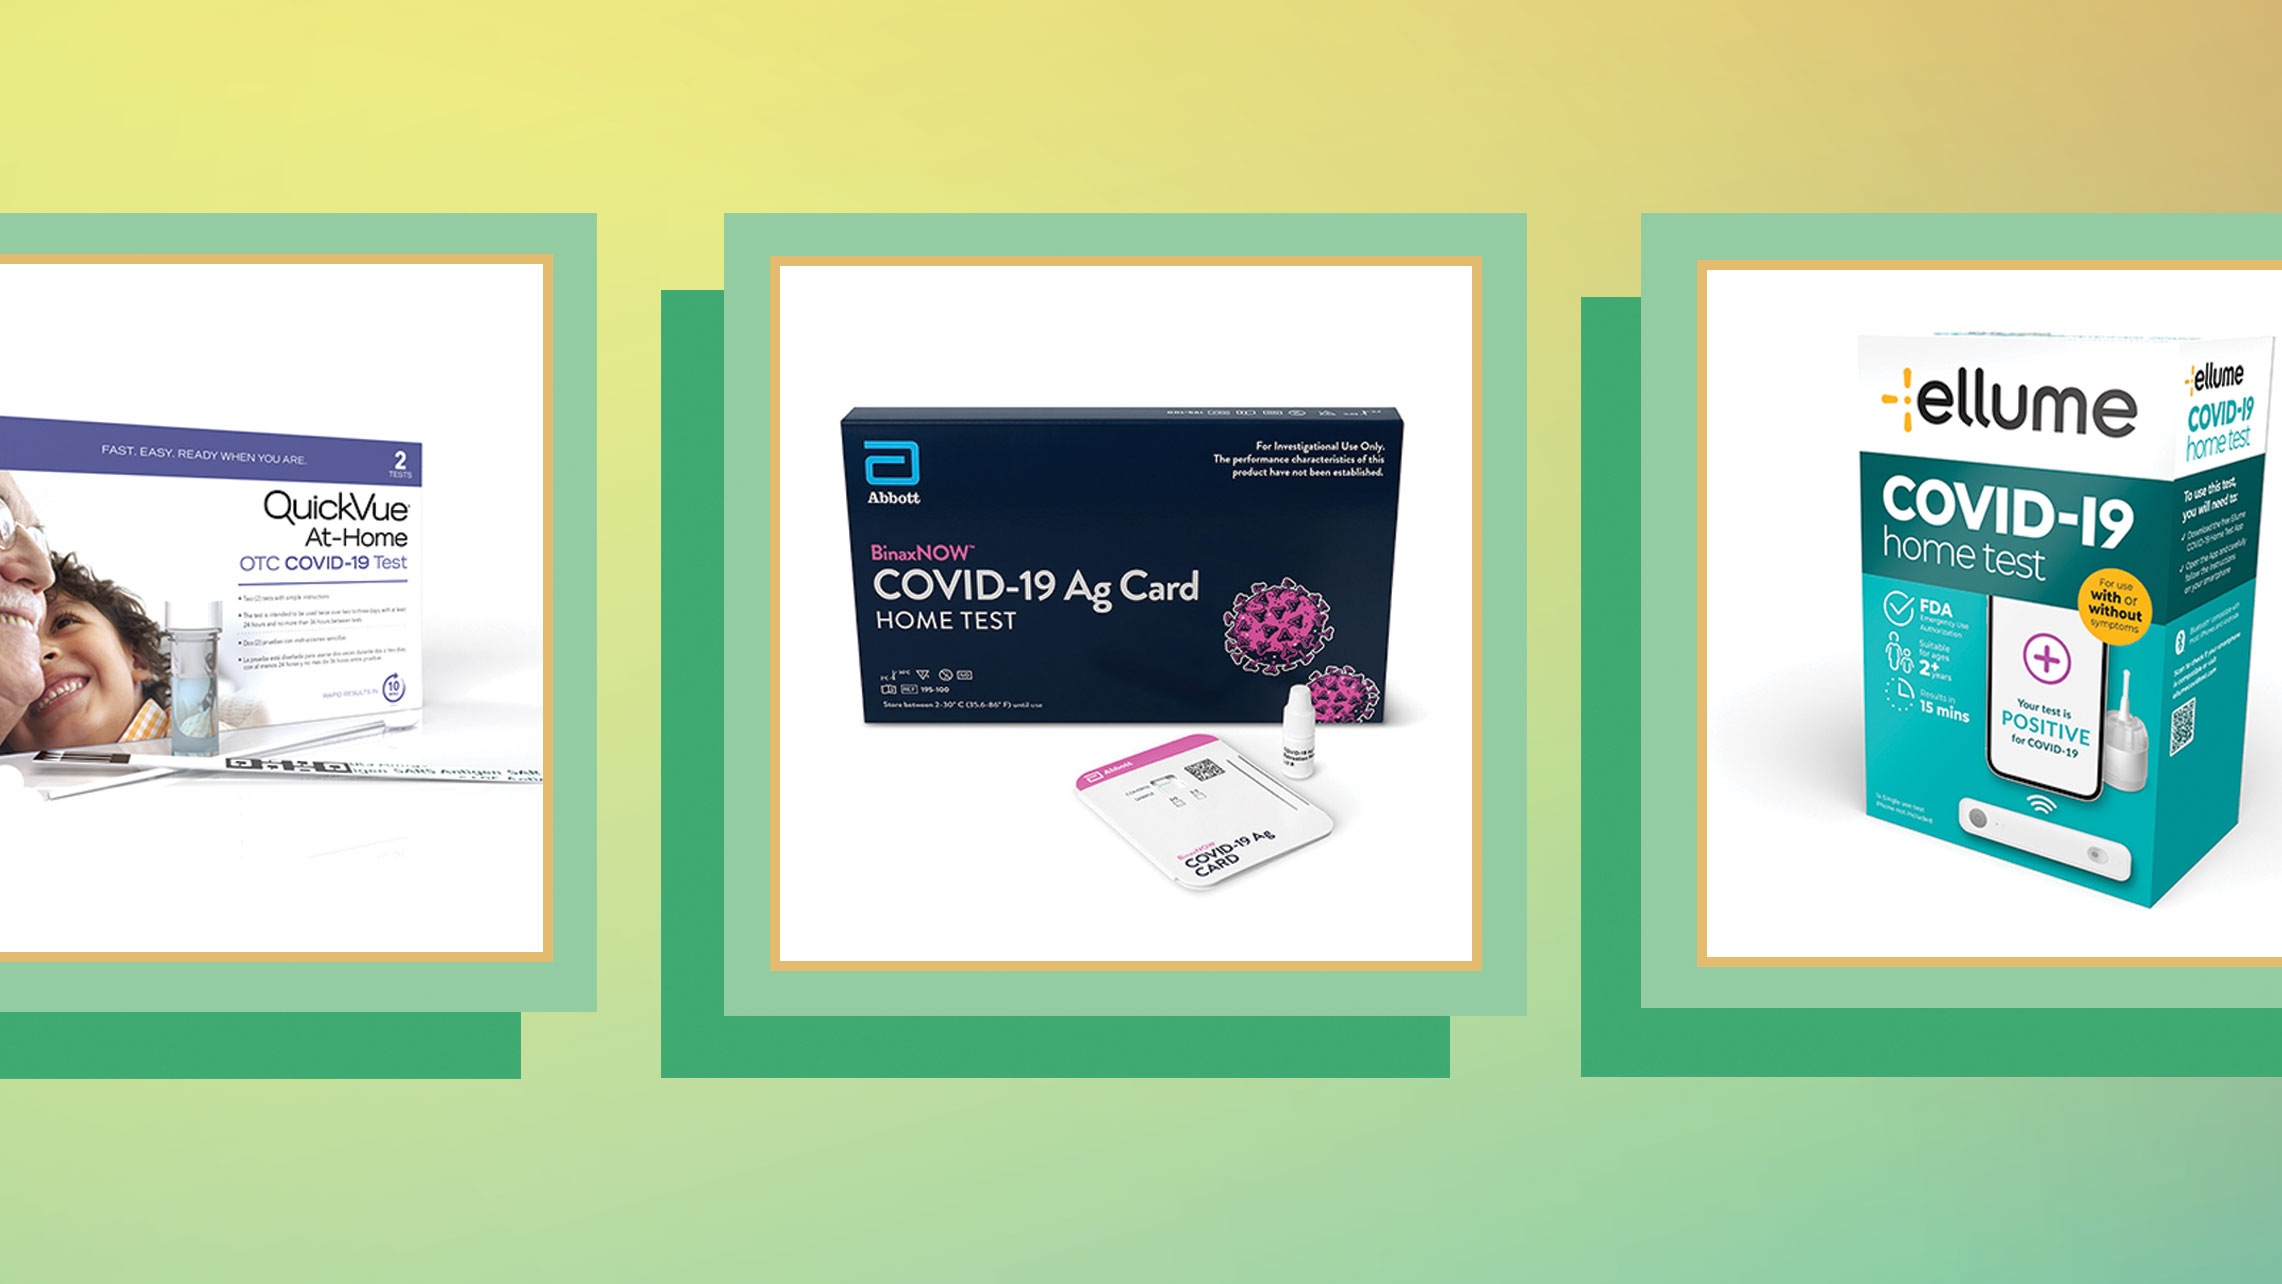 At-home over-the-counter COVID-19 tests will be available at retail stores without a prescription.